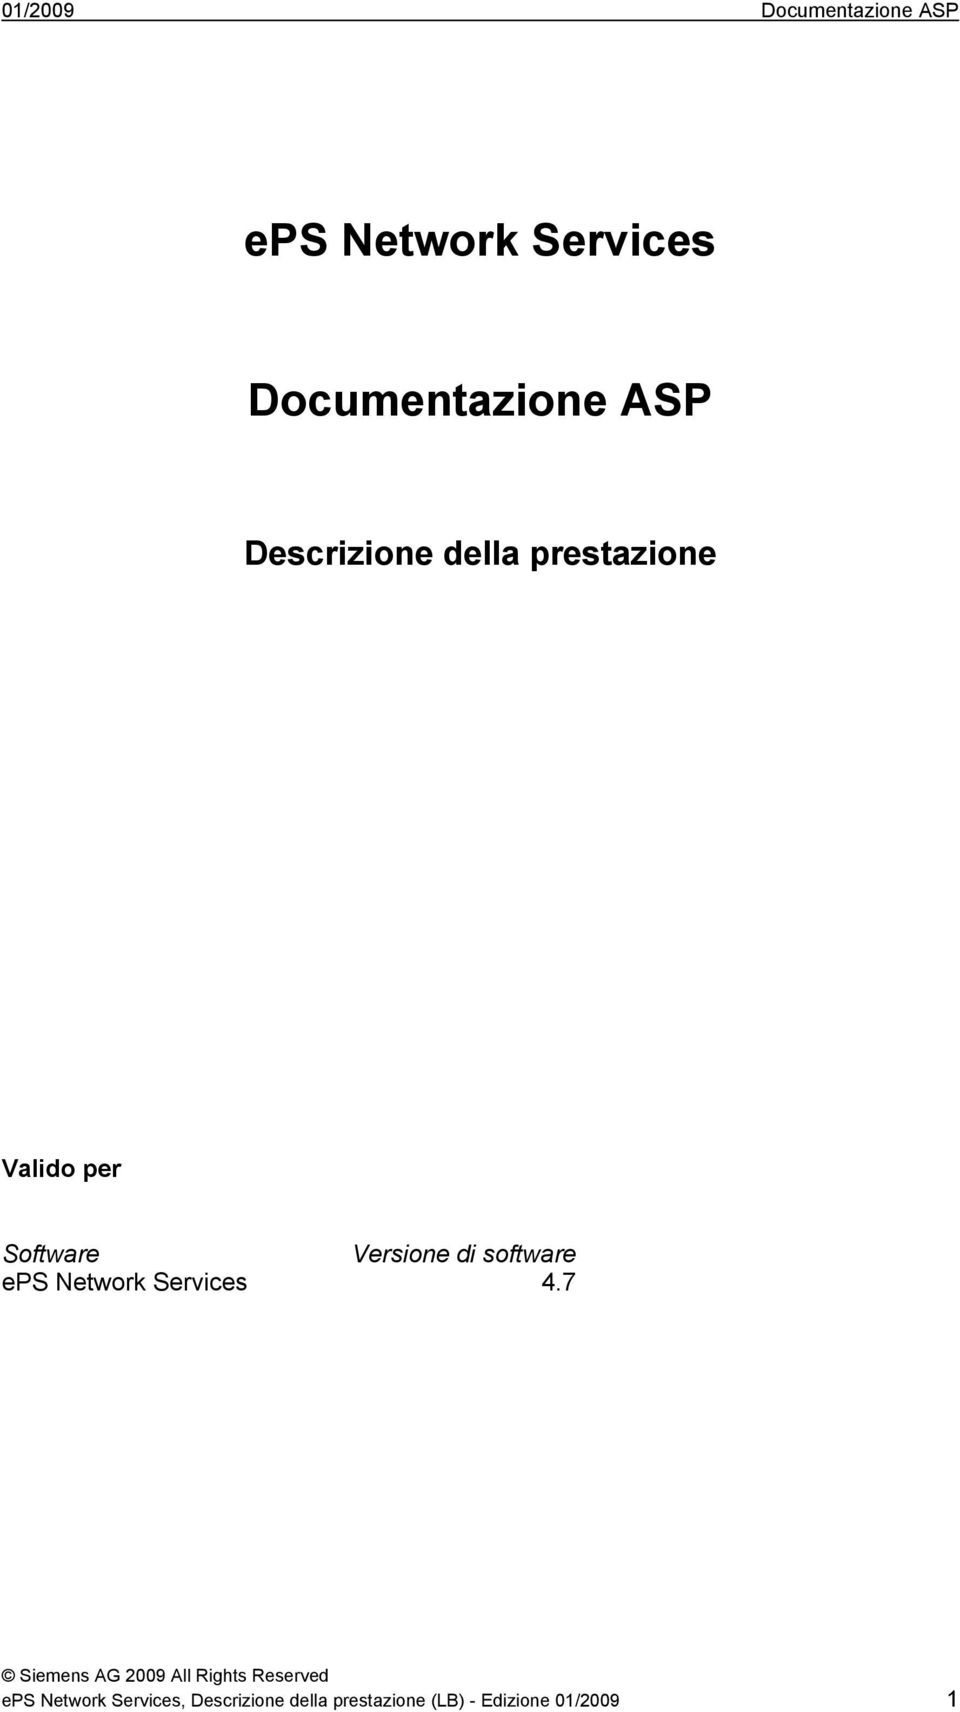 Software Versione di software eps Network Services 4.